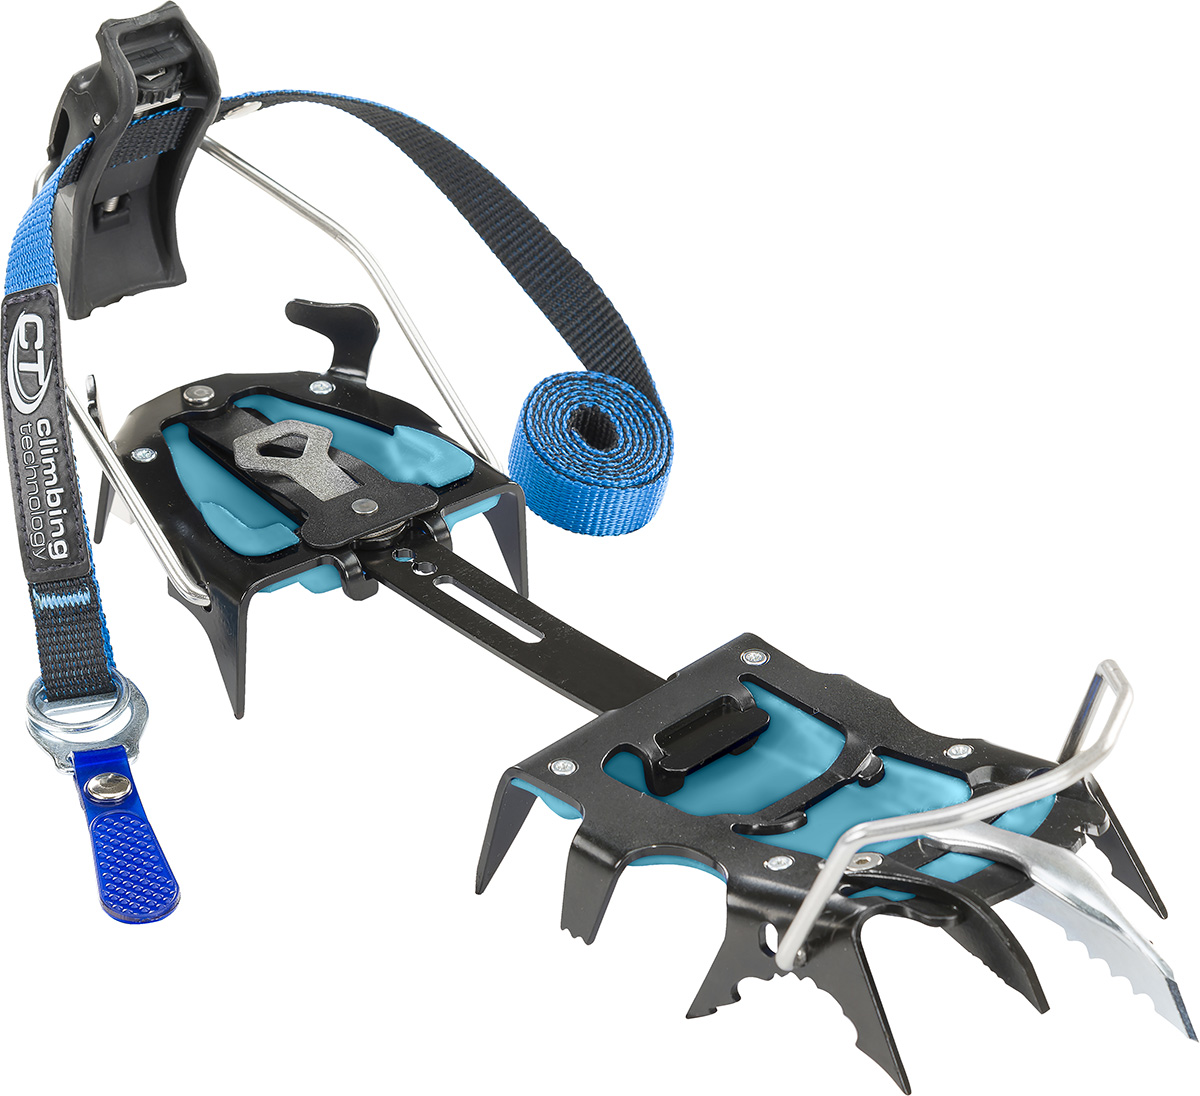 Technical crampon with 13-points for mountaineering Hyper-Spike, with interchangeable front points, for steep technical ice climbing.